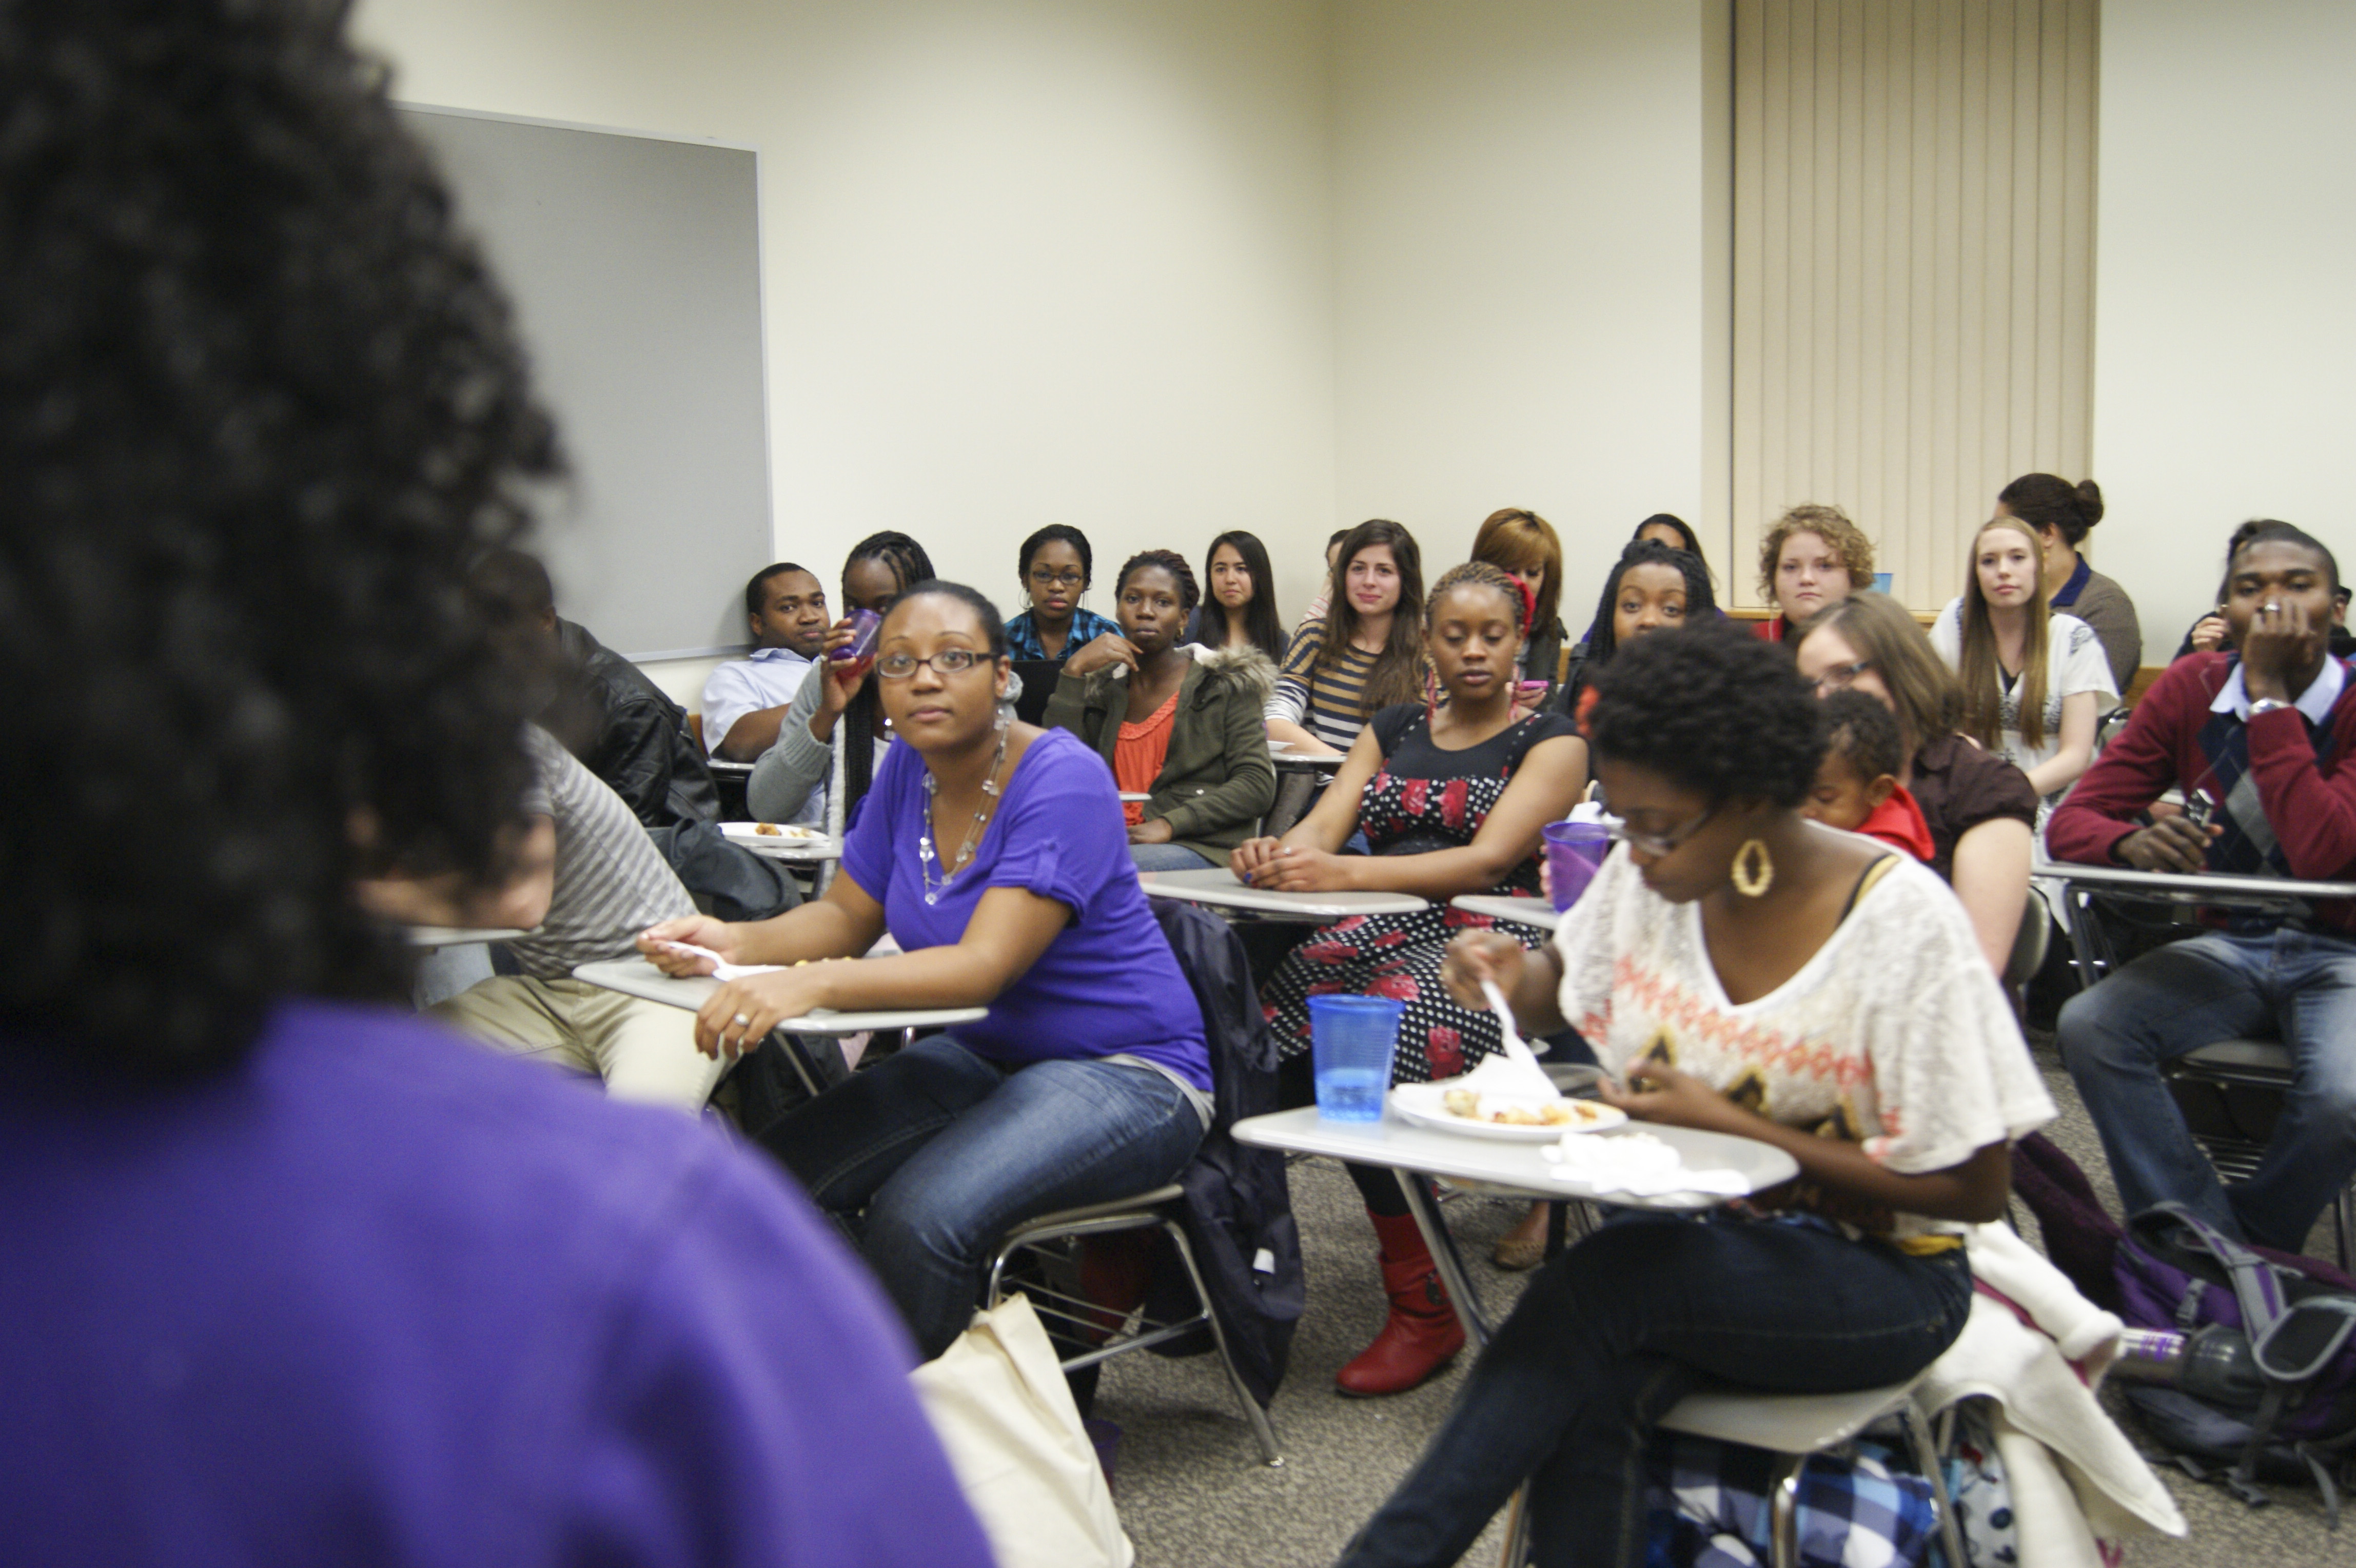 Students discuss racial equality and understanding at BYU-I